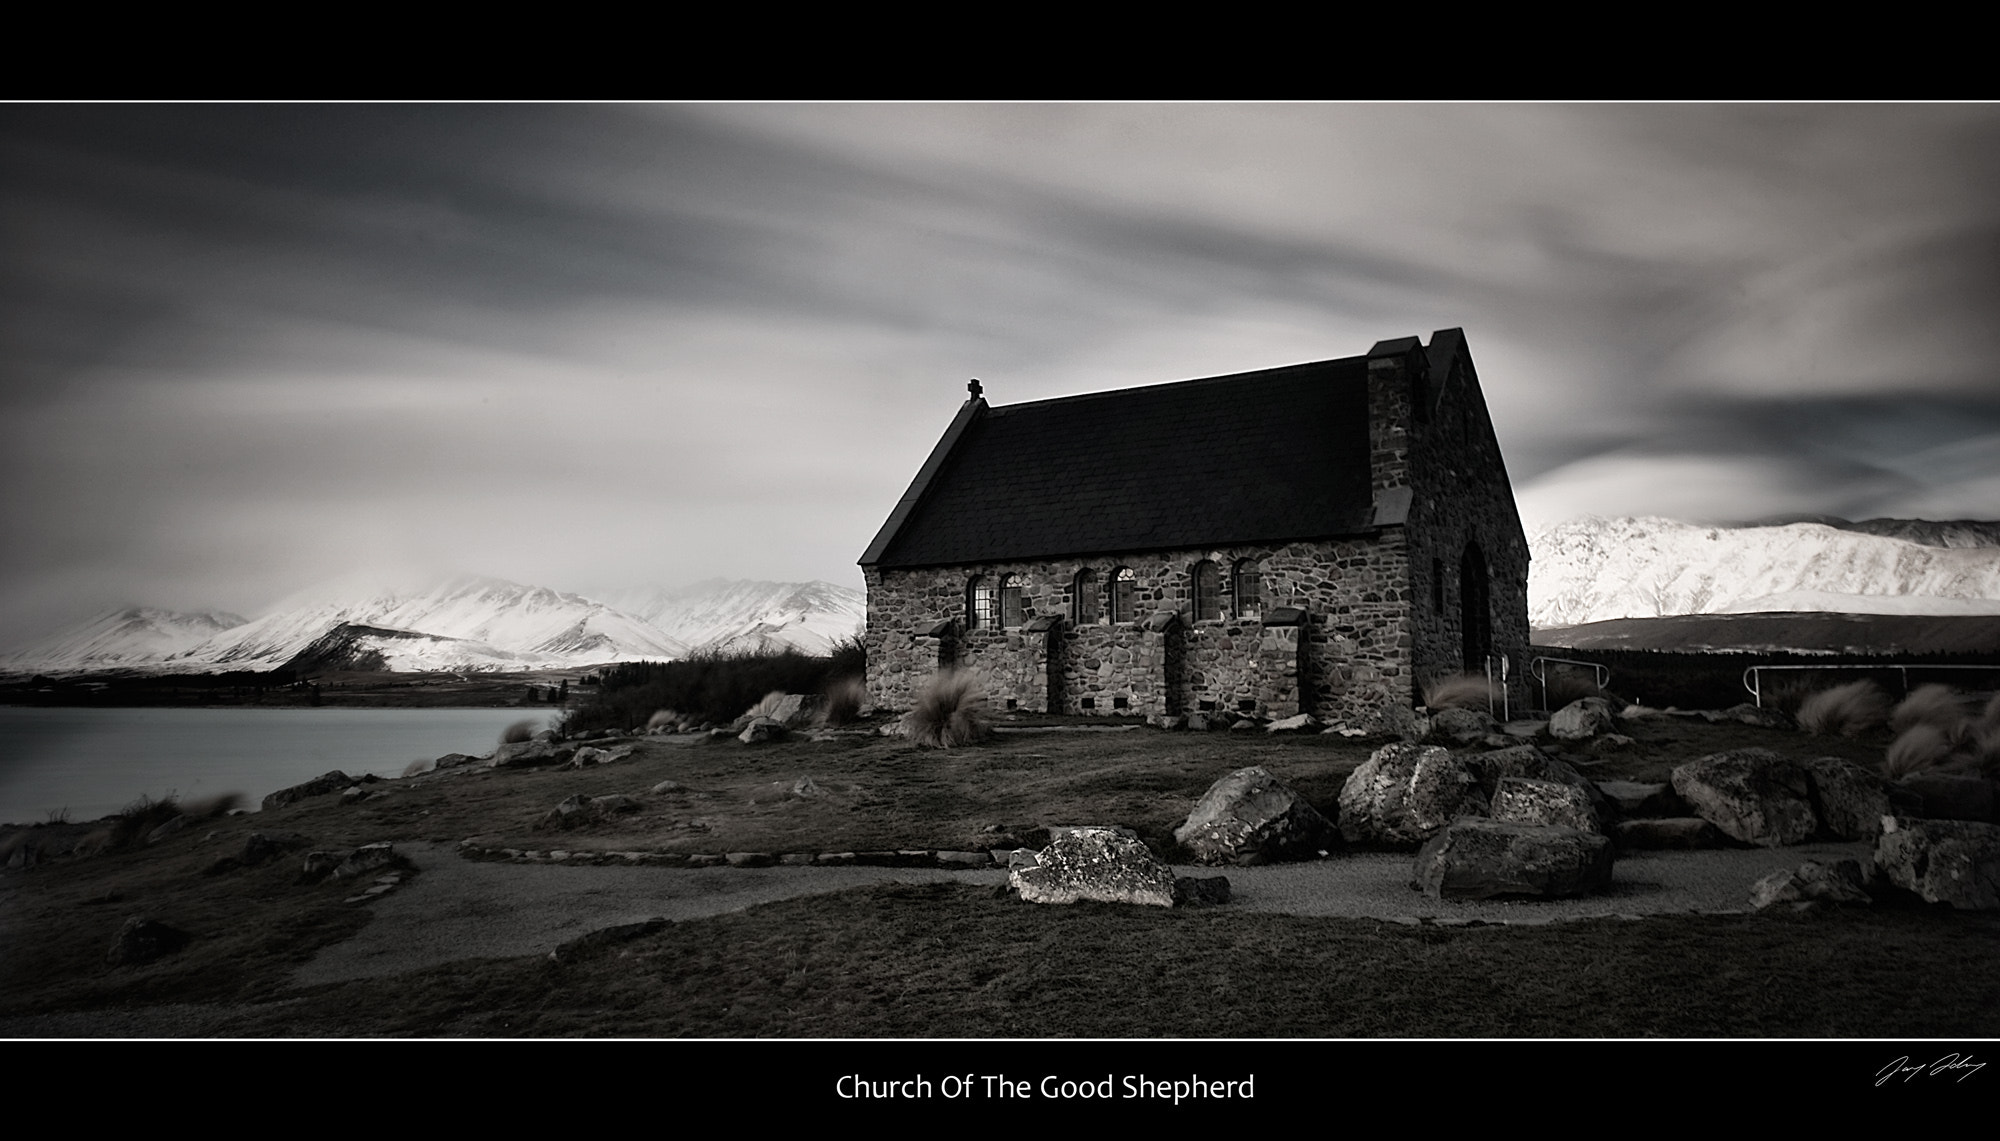 Photograph Church of the Good Shepherd by Jay Daley on 500px